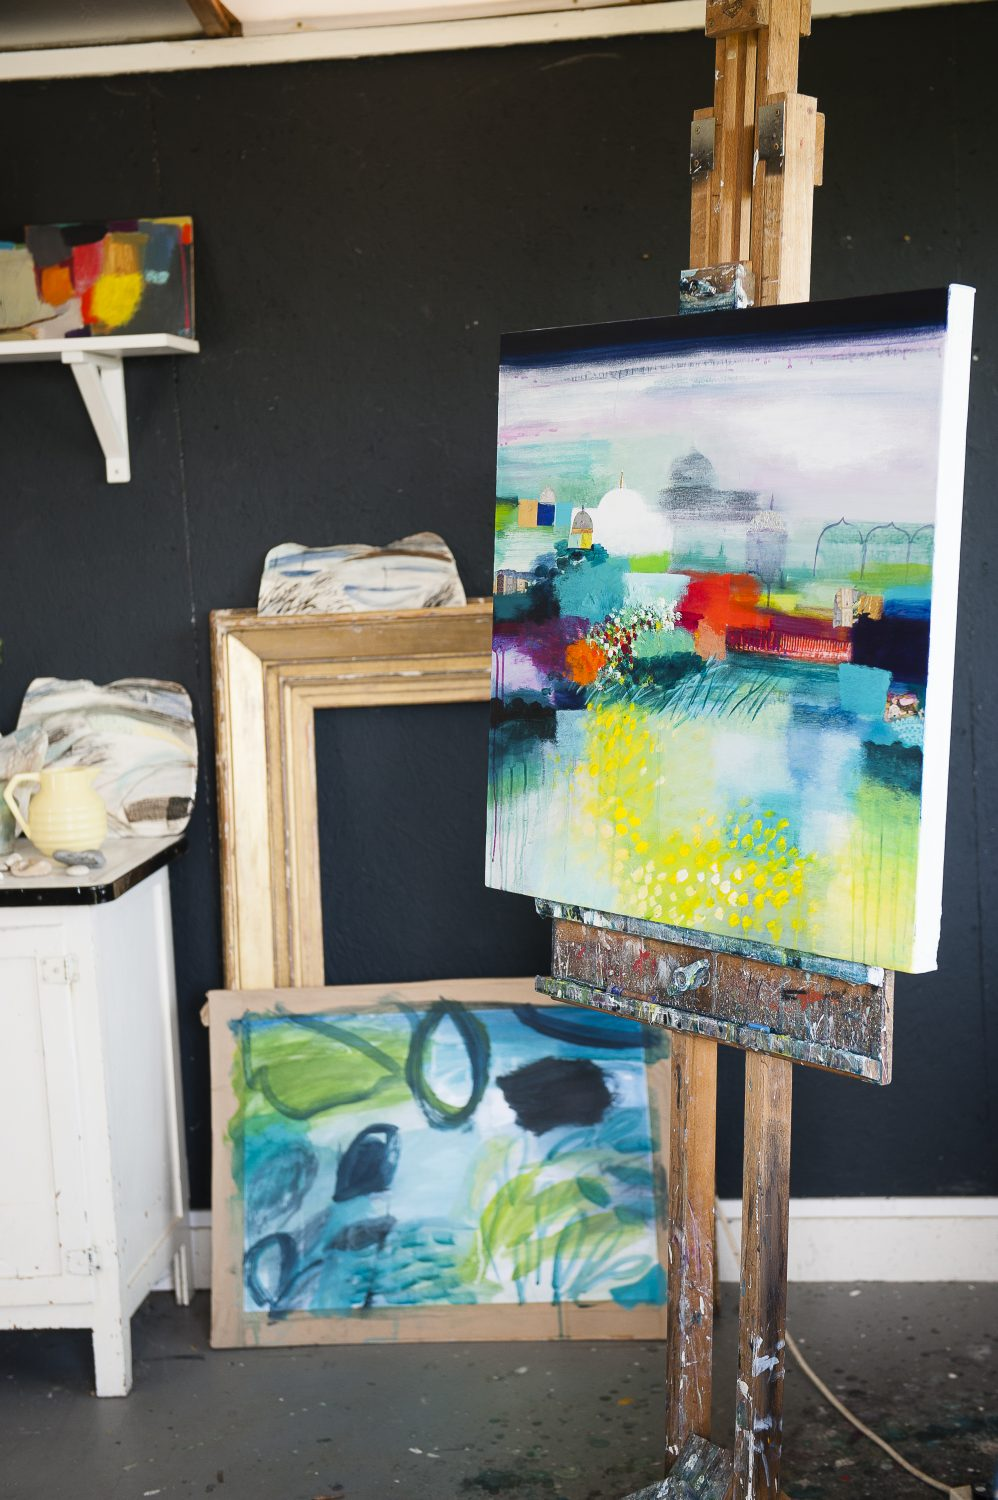 Memory and a response to the experiences of a place is a key part of Karen's paintings